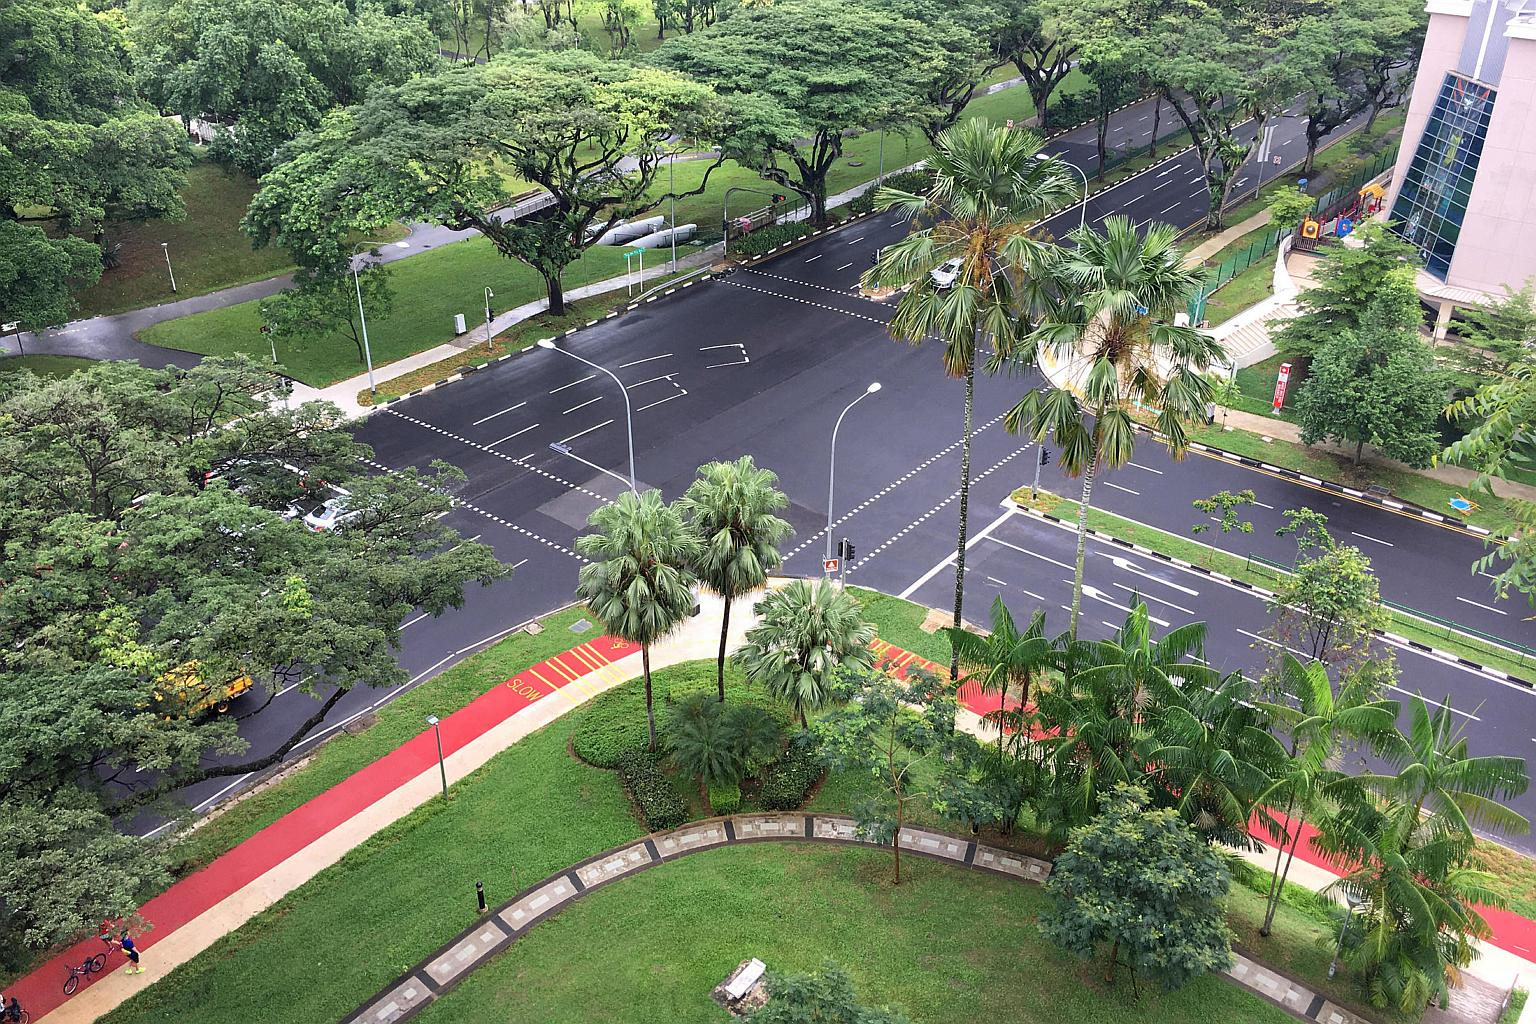 Completed Cycling Tracks at Ang Mo Kio